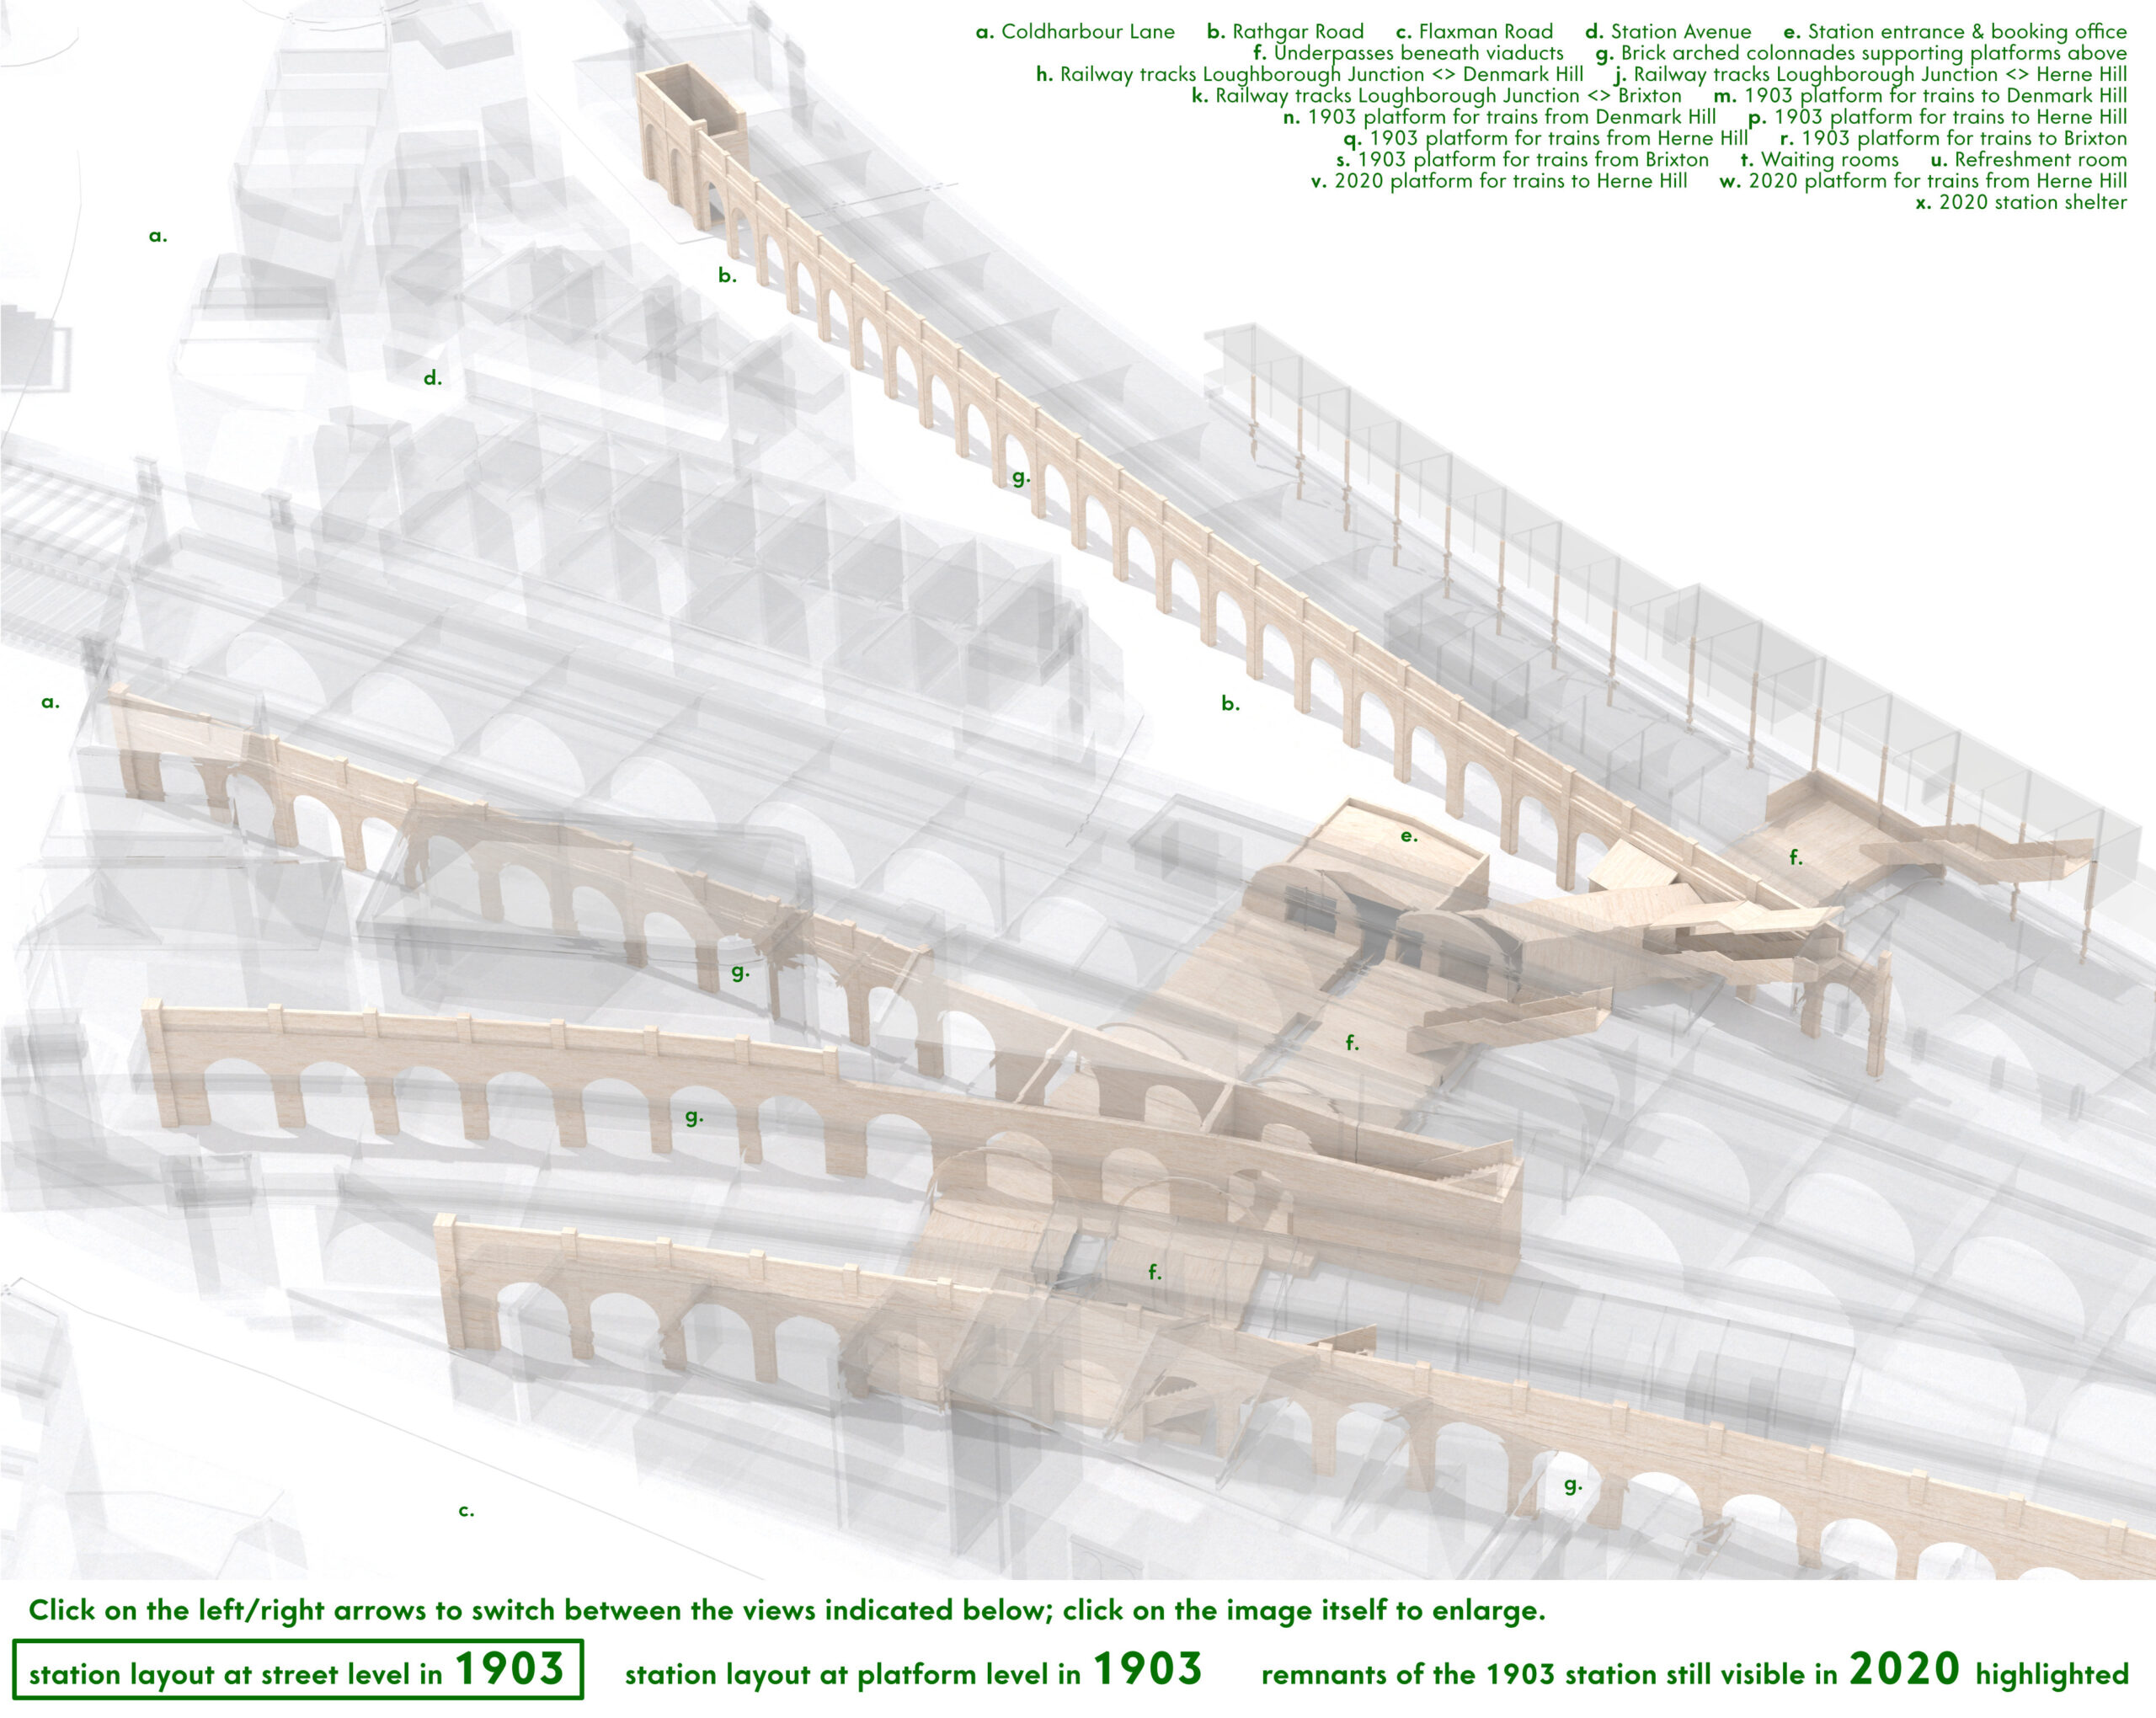 Loughborough Junction station history